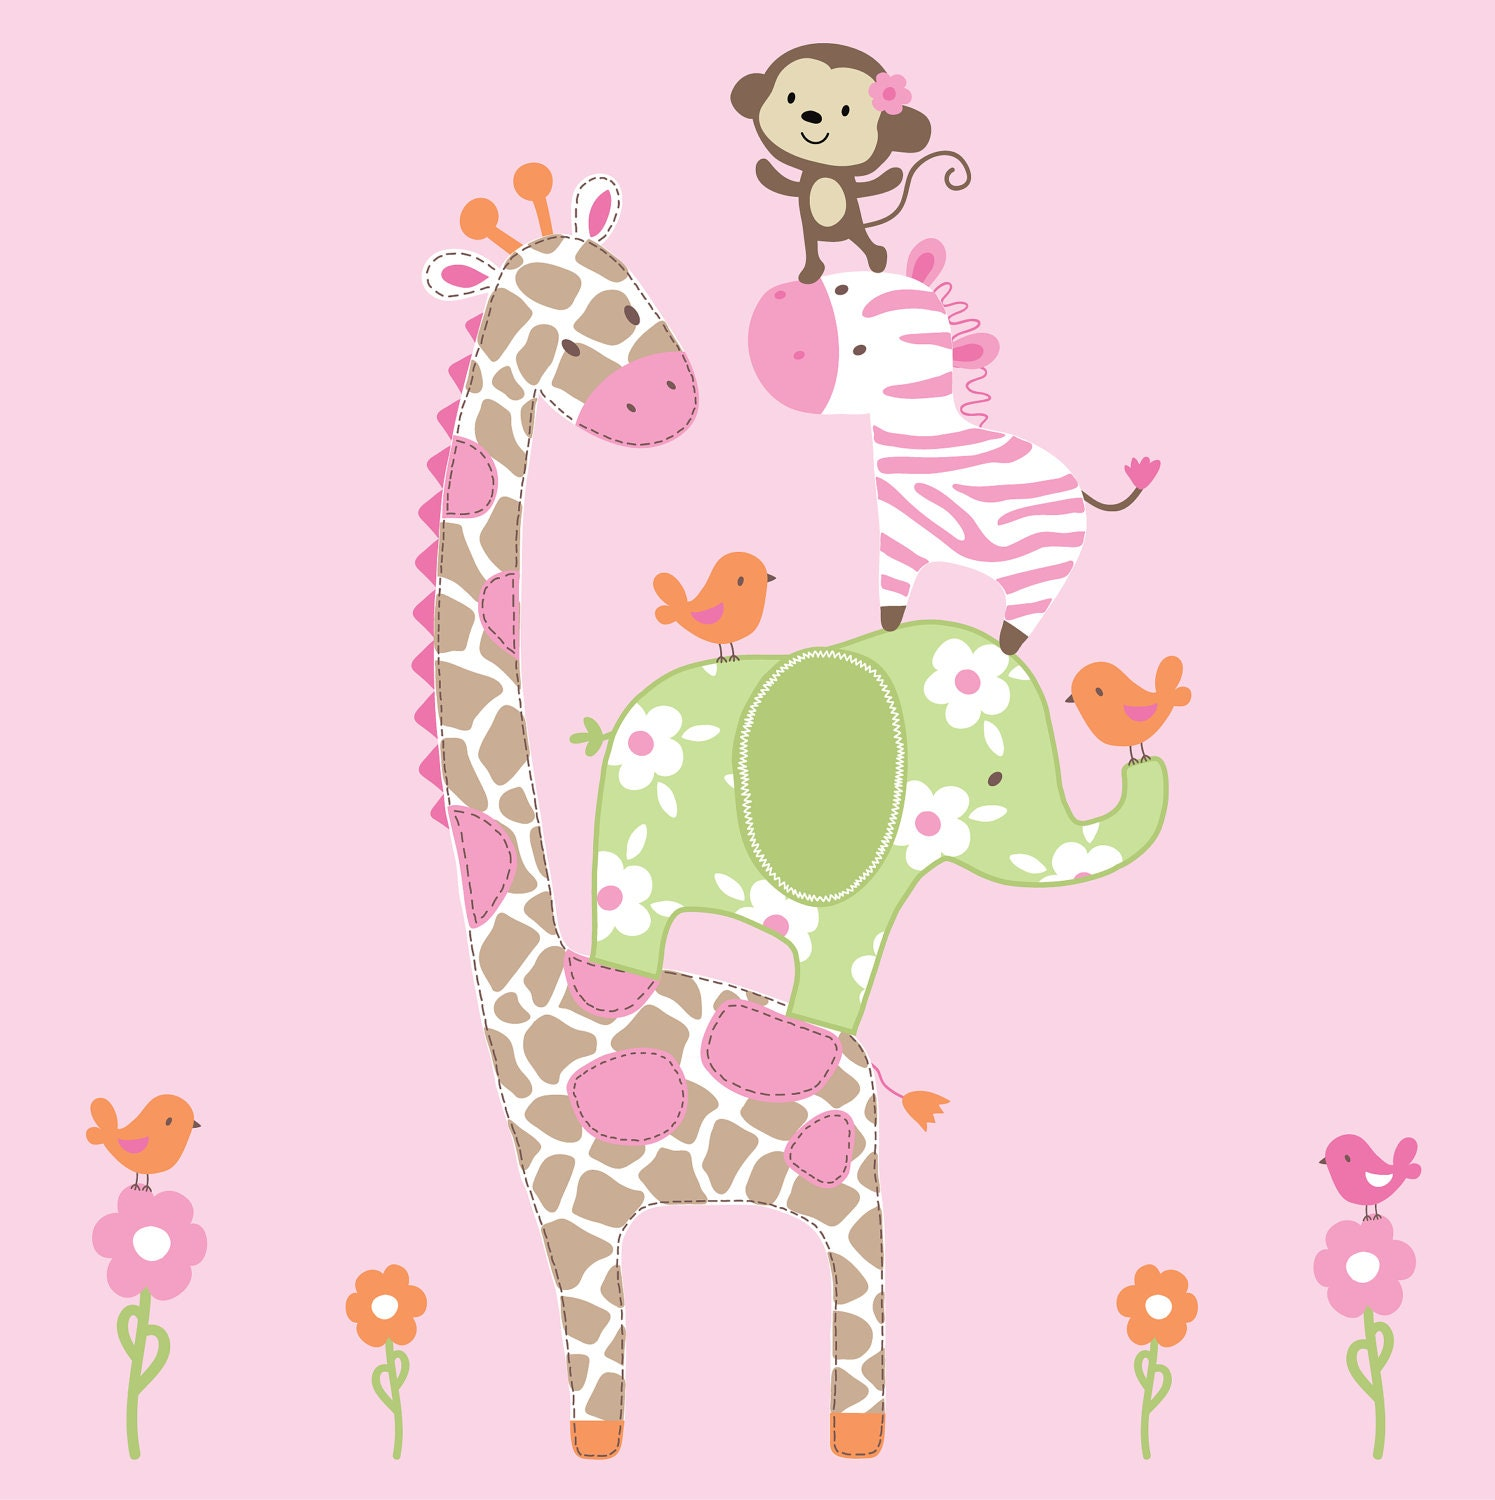 Wall Art Stickers Jungle : Girls jungle animals decals vinyl wall art decal by